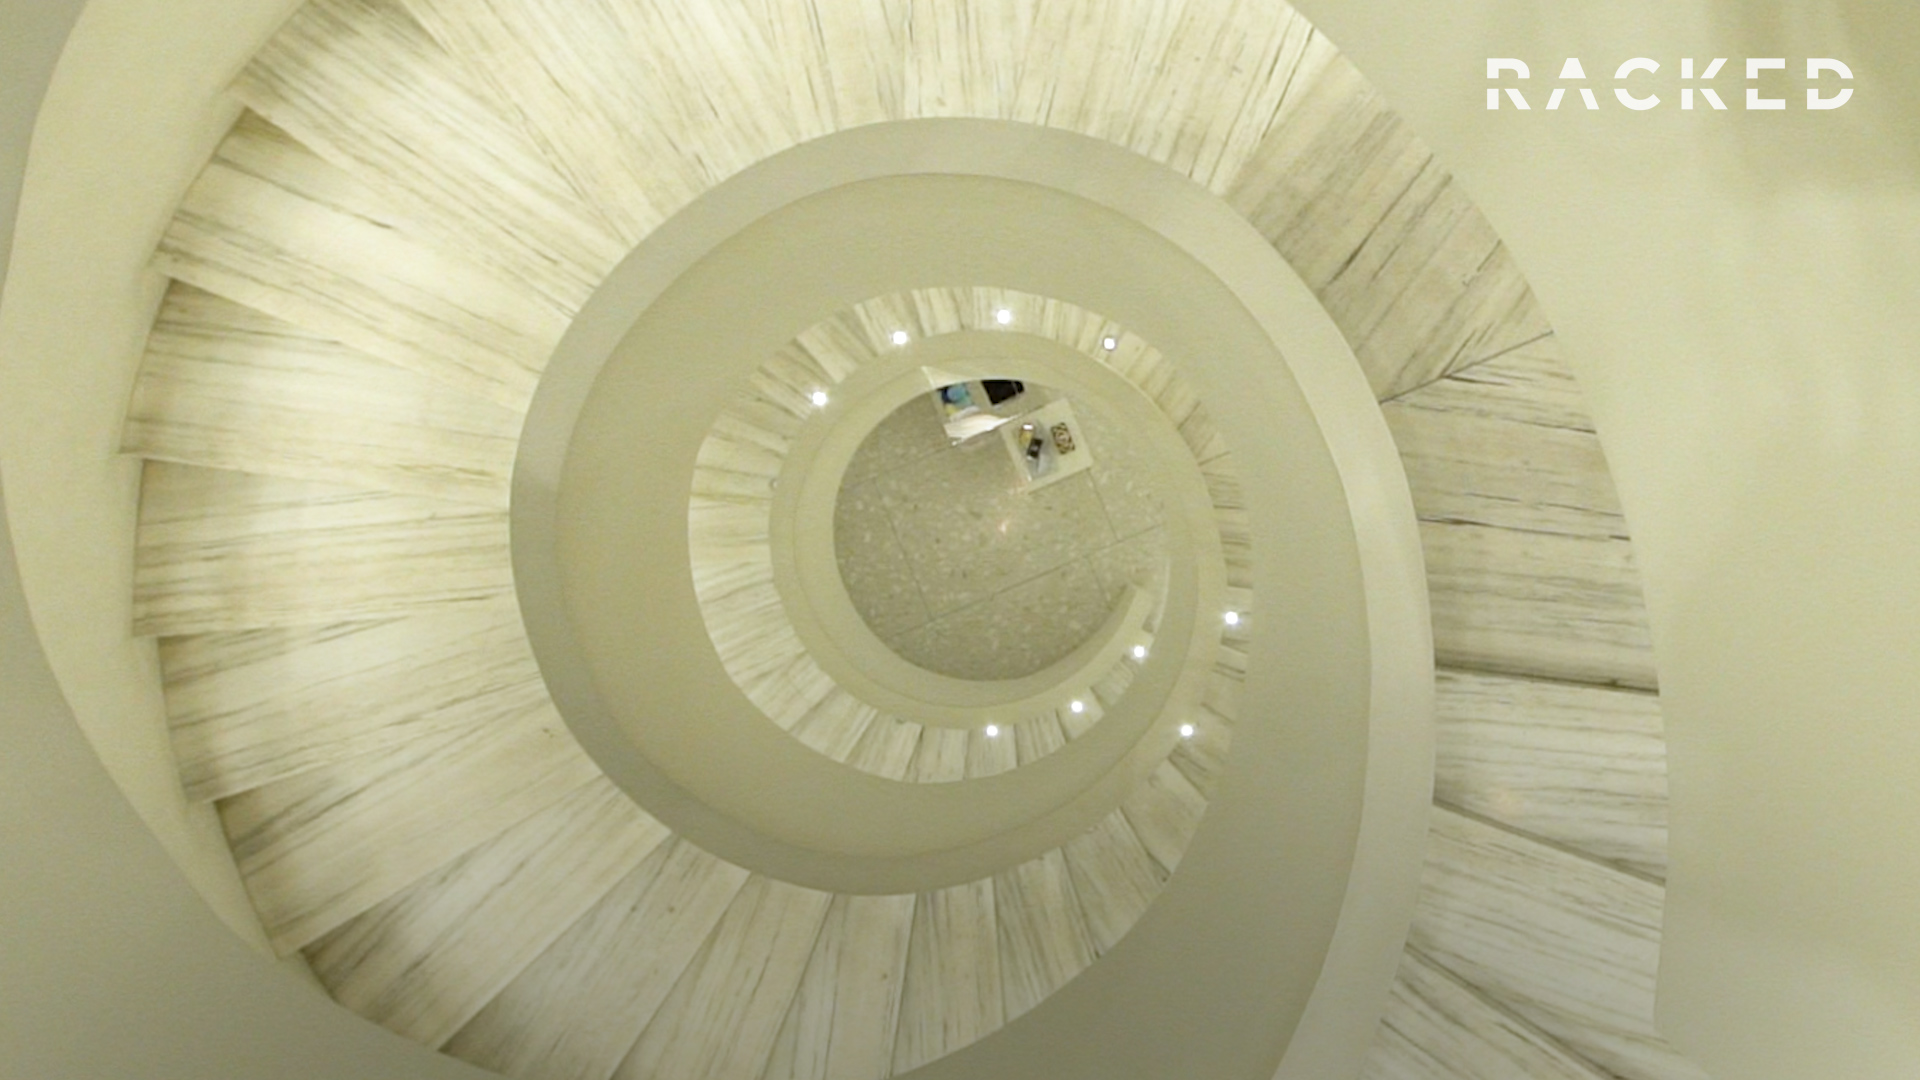 The white marble spiral staircase at Barneys in New York City